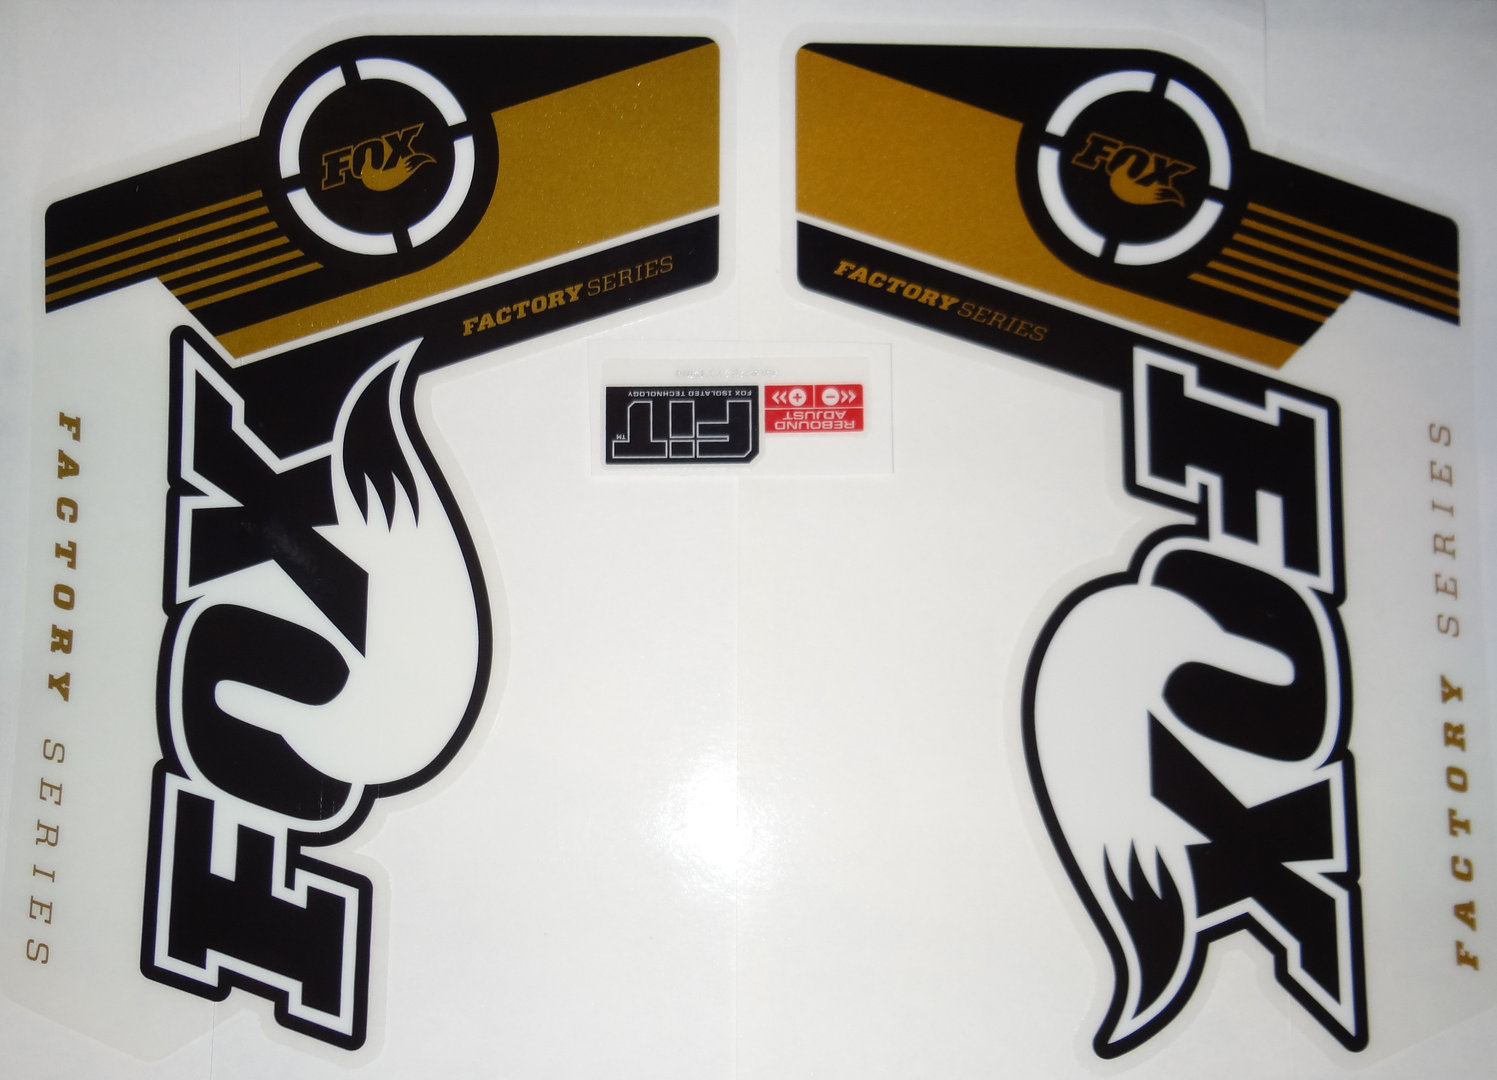 Fox fork decal 36 gold factory series stickers activesport